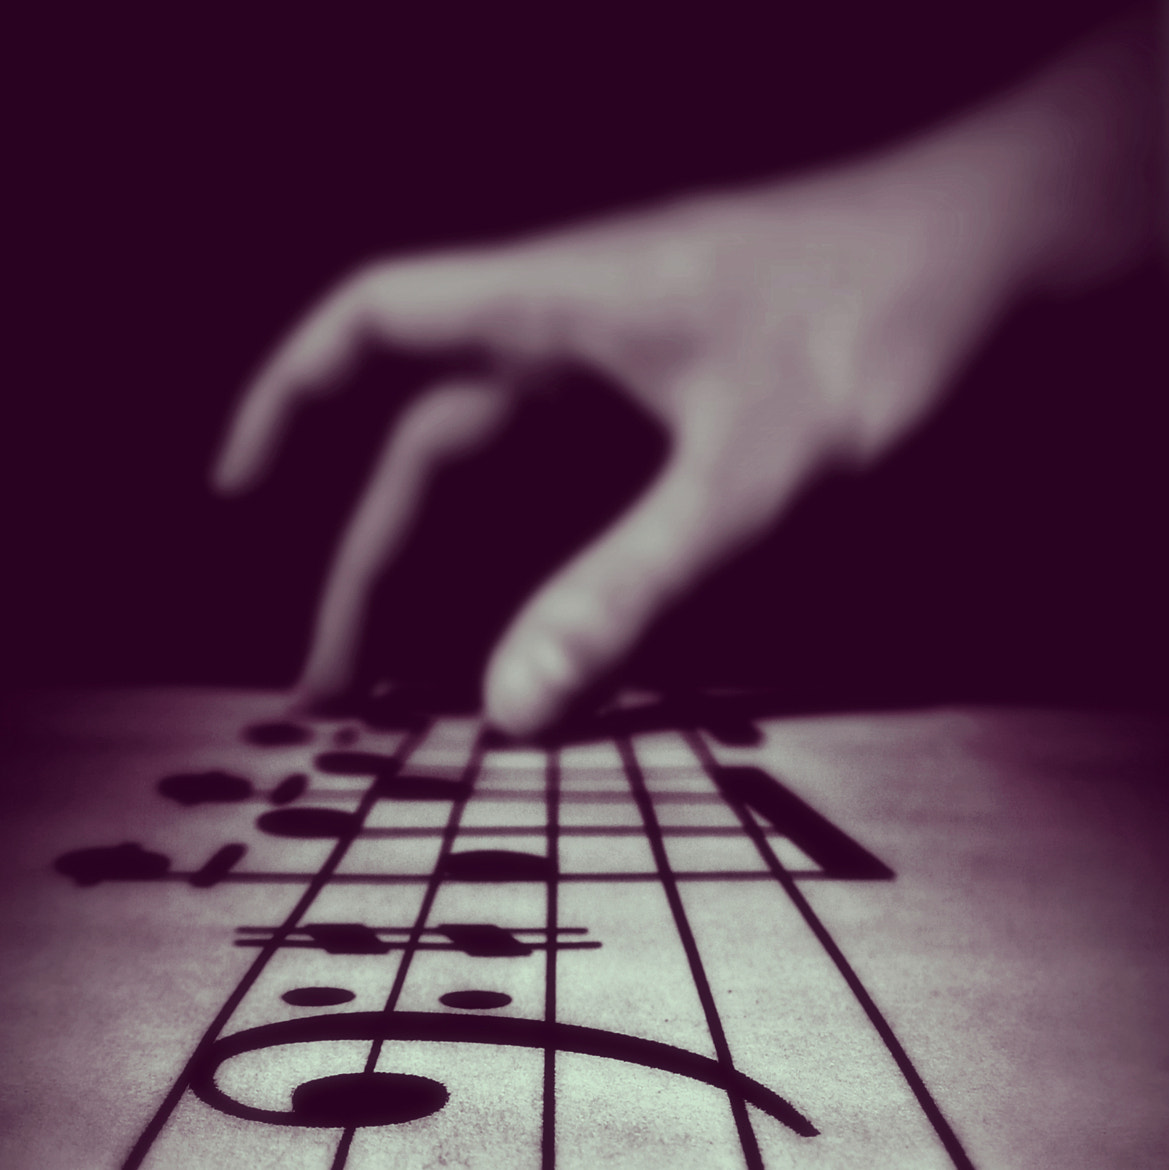 Photograph touching music by Katarzyna T. on 500px